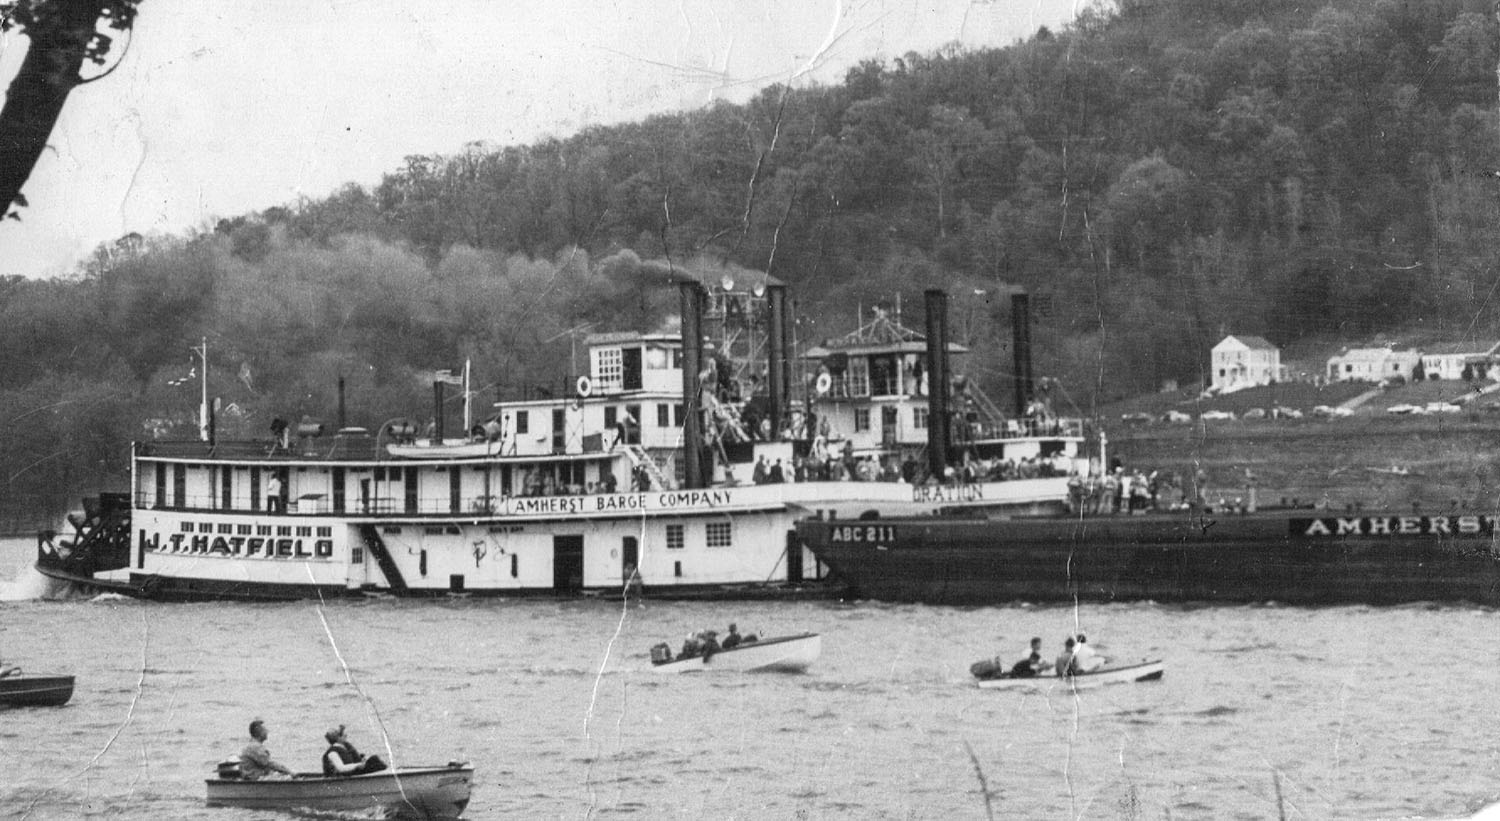 The second towboat J.T. Hatfield during one of its three races with the Weber W. Sebald in the 1950s. (Keith Norrington collection)